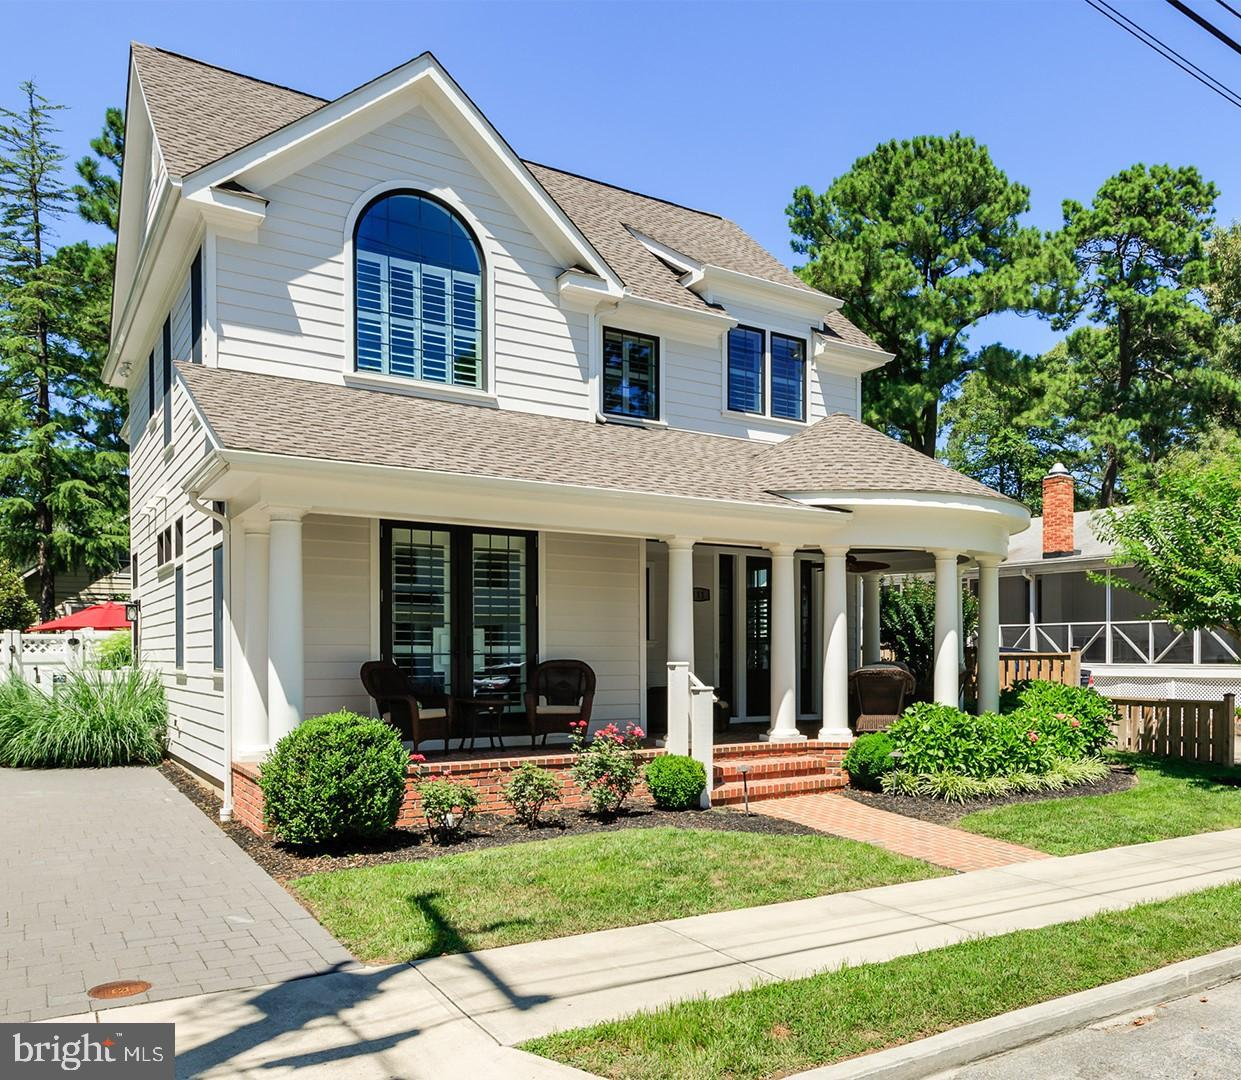 DESU144060-301902859522-2019-07-20-10-12-51 111 Rodney St | Rehoboth Beach, DE Real Estate For Sale | MLS# Desu144060  - Jack Lingo REALTOR